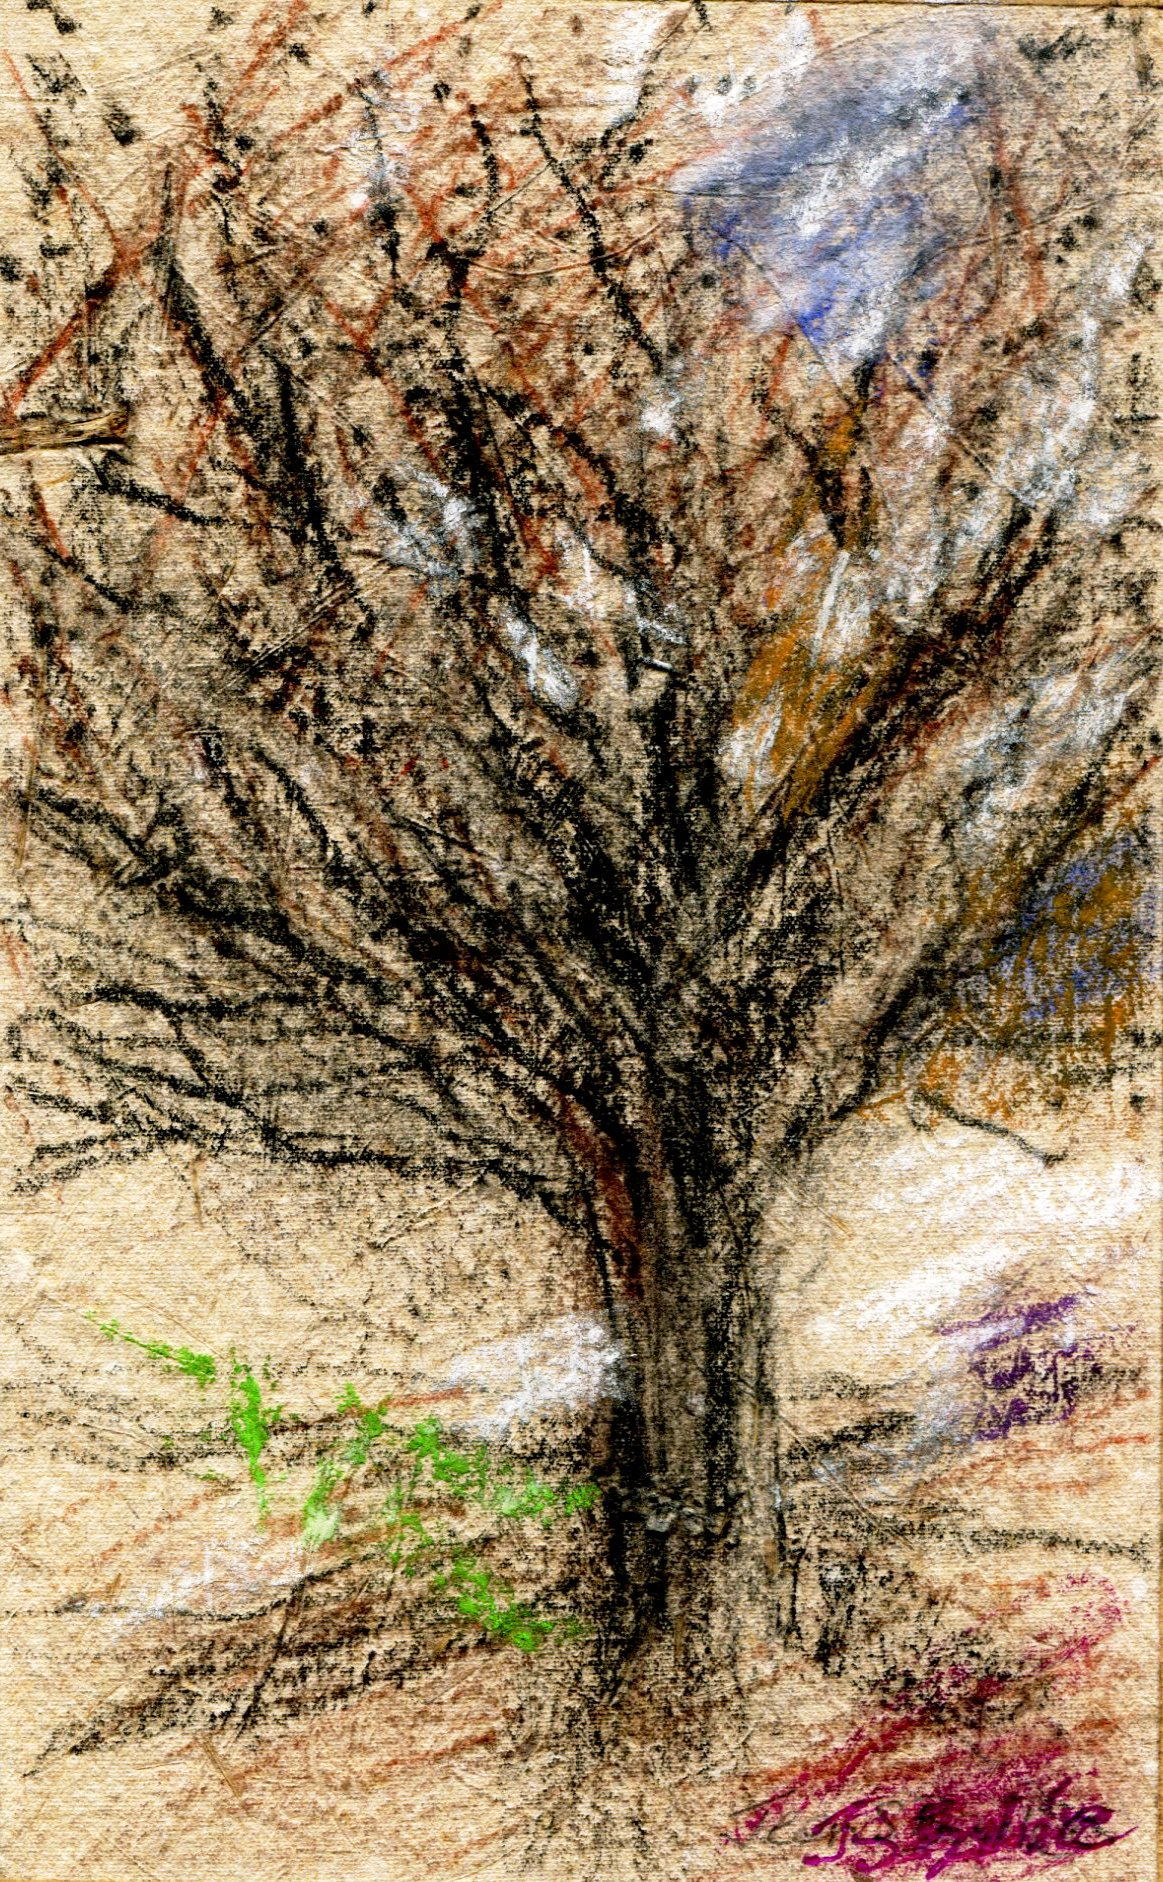 30A JEAN STEWART BAILIE, SIGNS OF SPRING 1, MIXED MEDIA ON HANDMADE PAPER